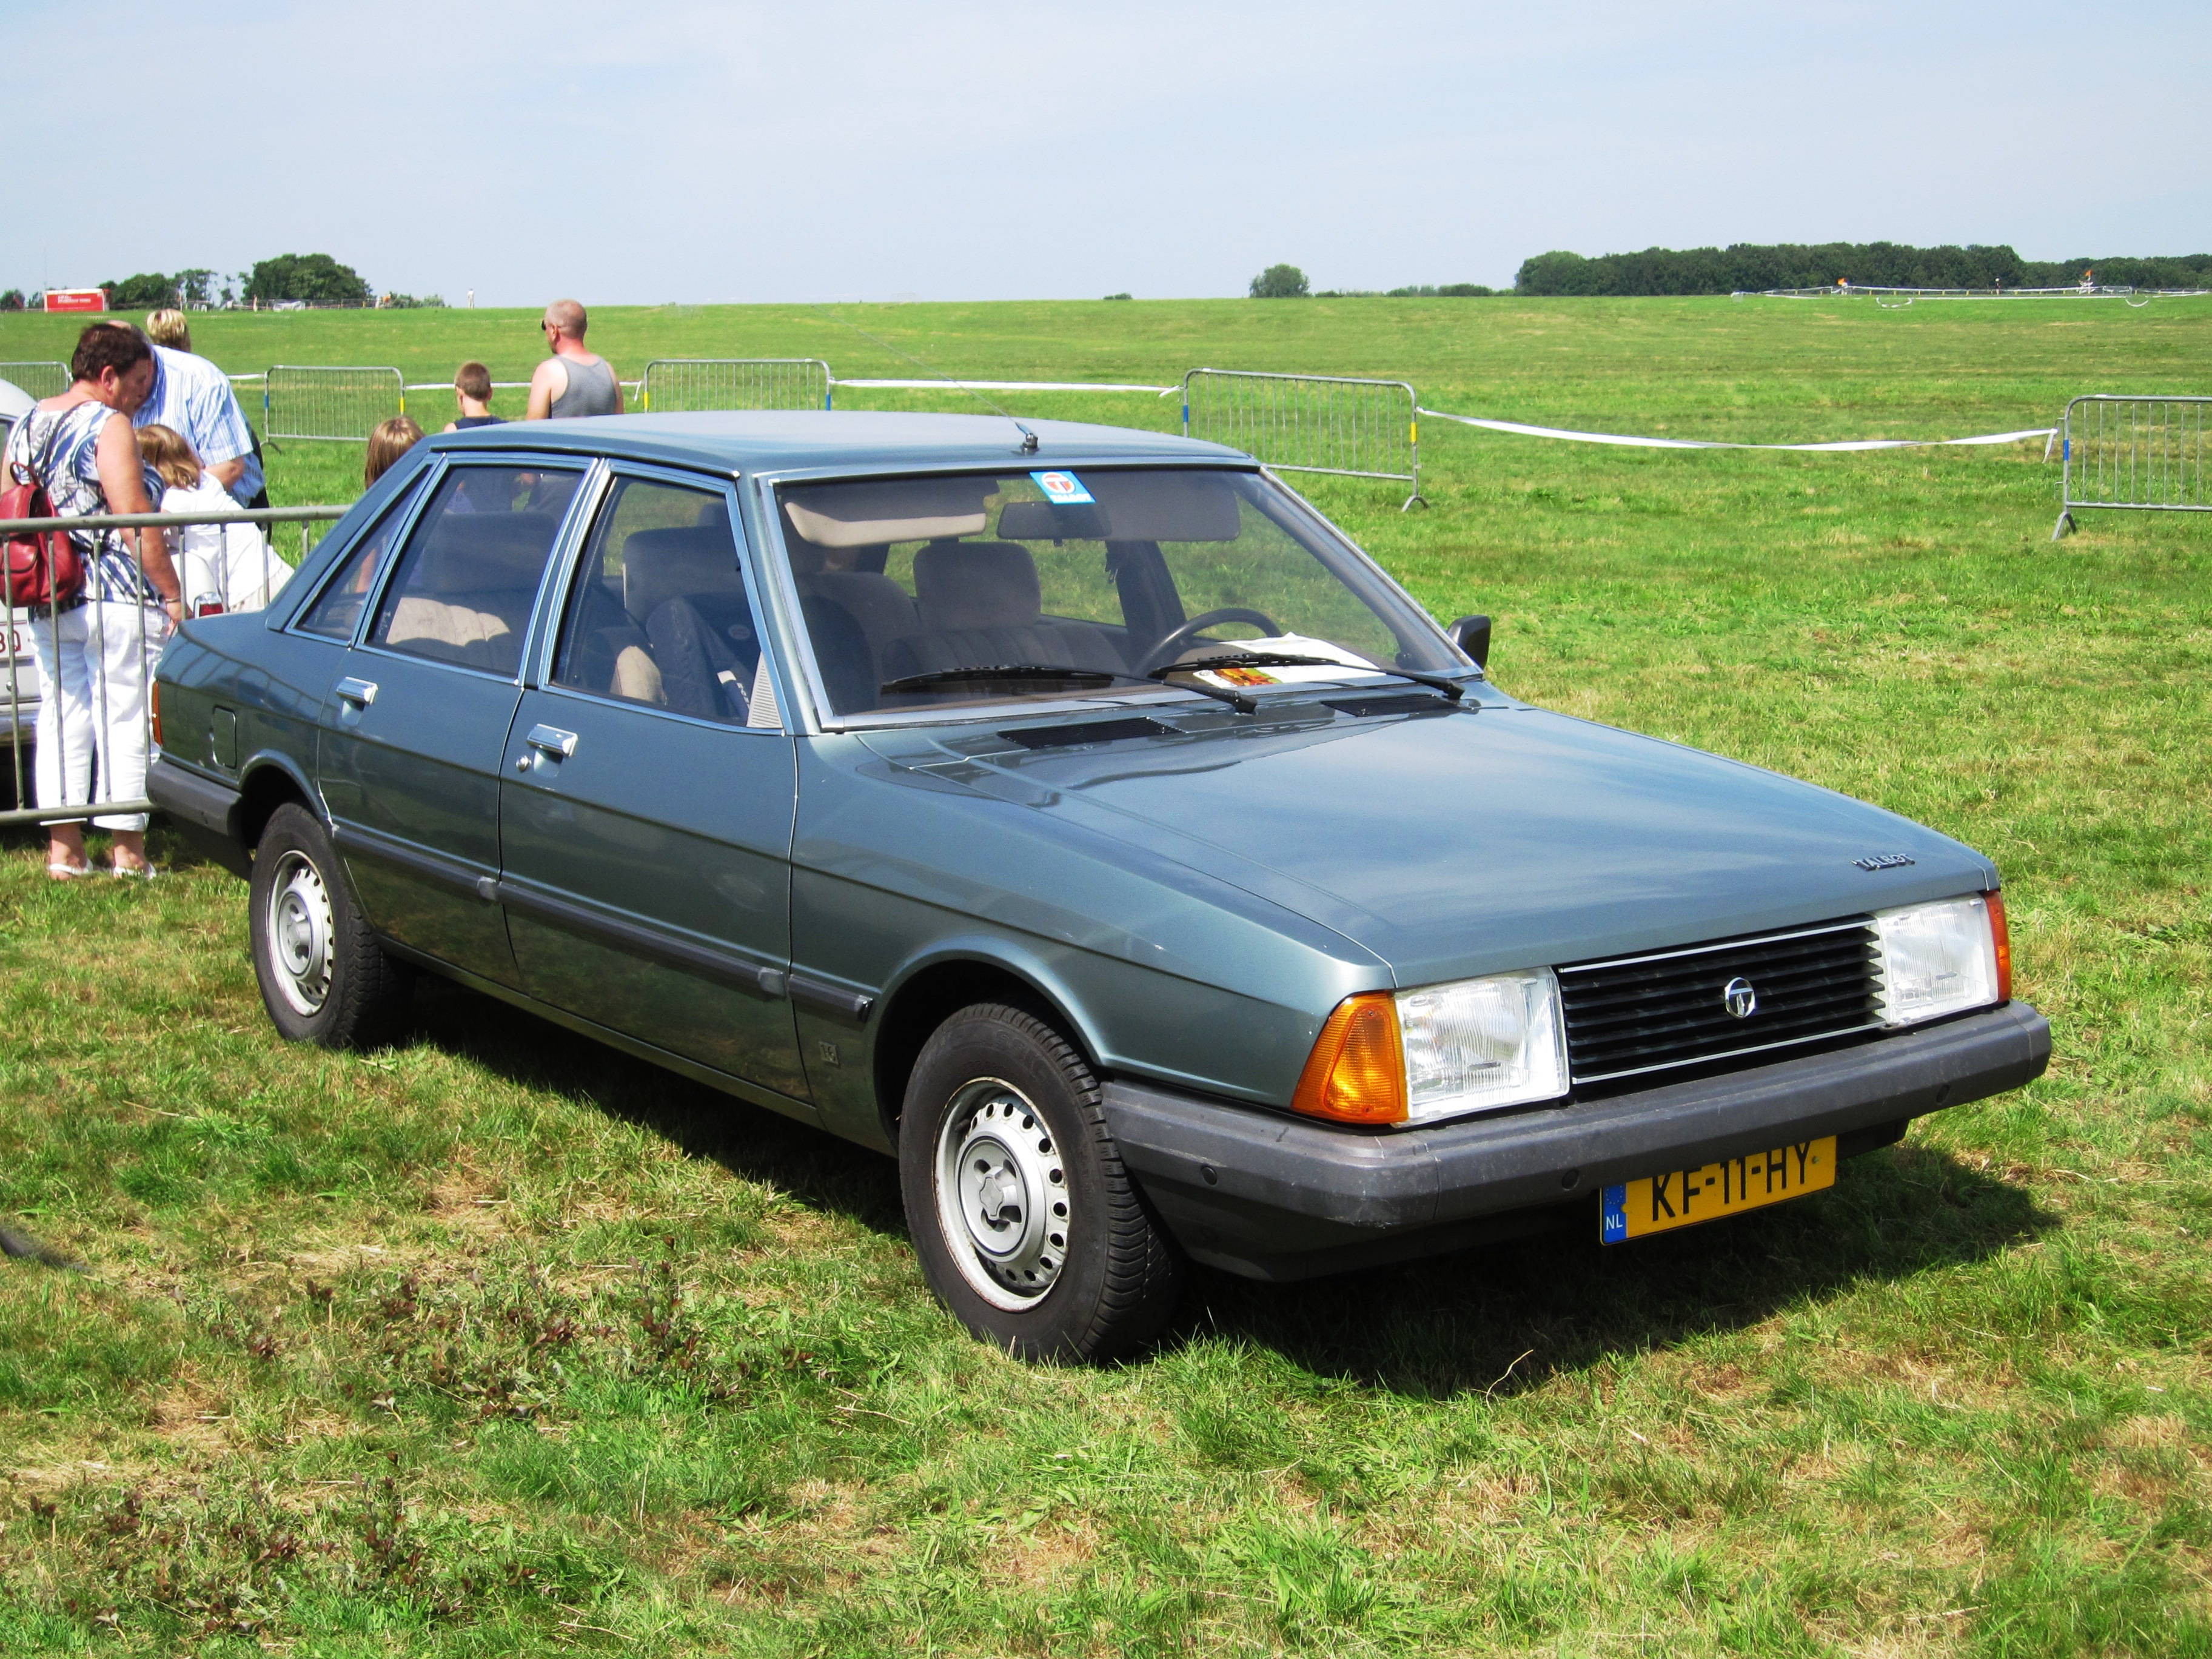 Talbot Alpine Used Cars For Sale